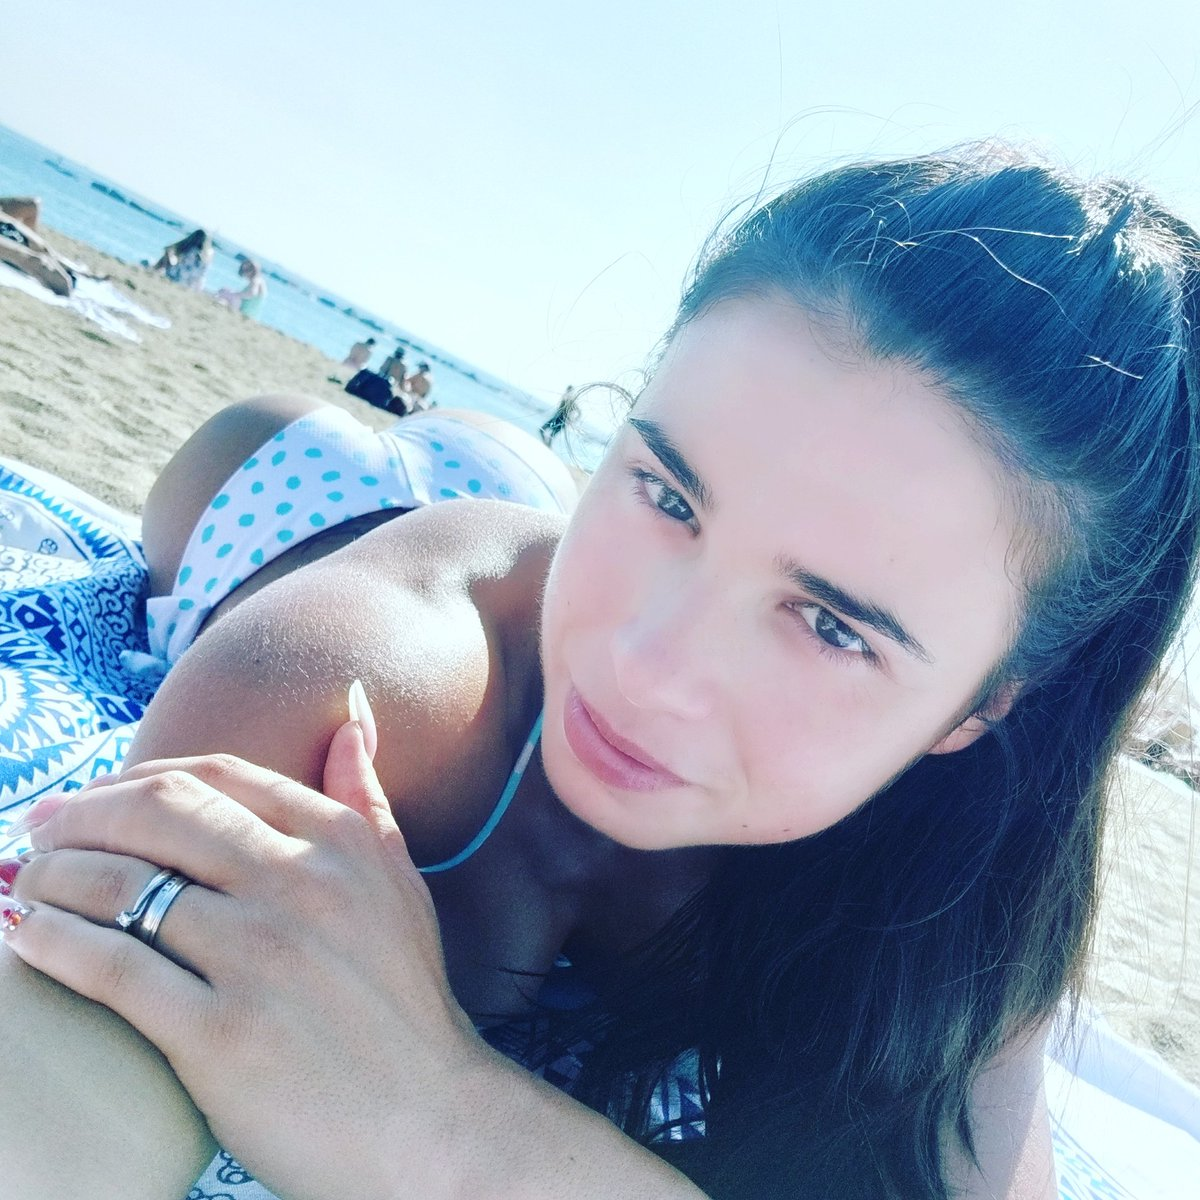 Beach #beach #Barcelona #relax #happy #girl #booty 7LpNvOLnLj